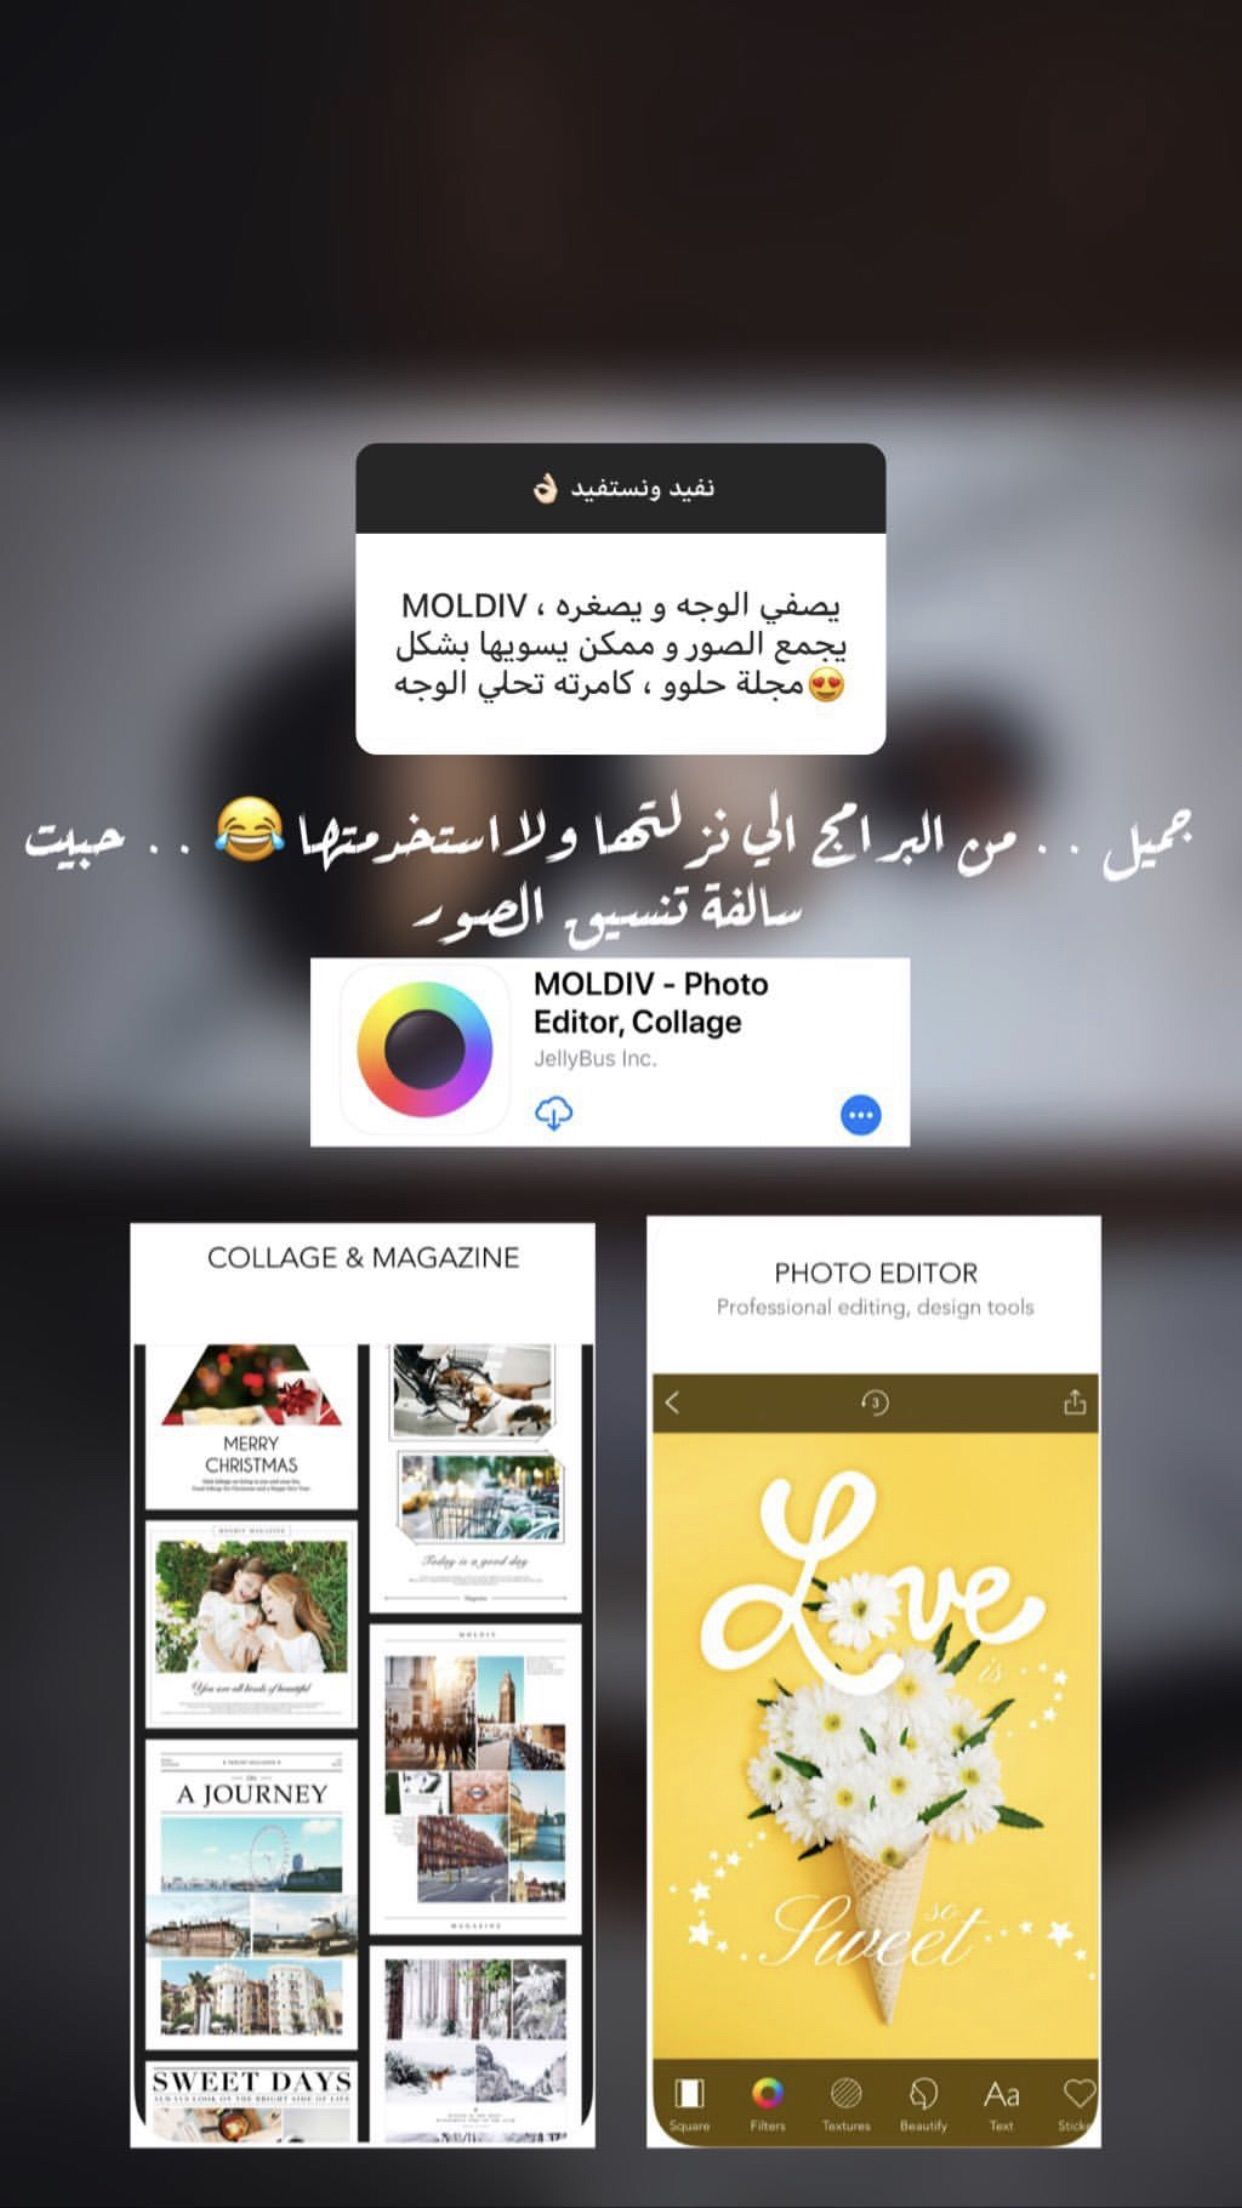 Pin By Ghalla Abdullah On فوائد In 2020 Programming Apps Tool Design Professional Photo Editing